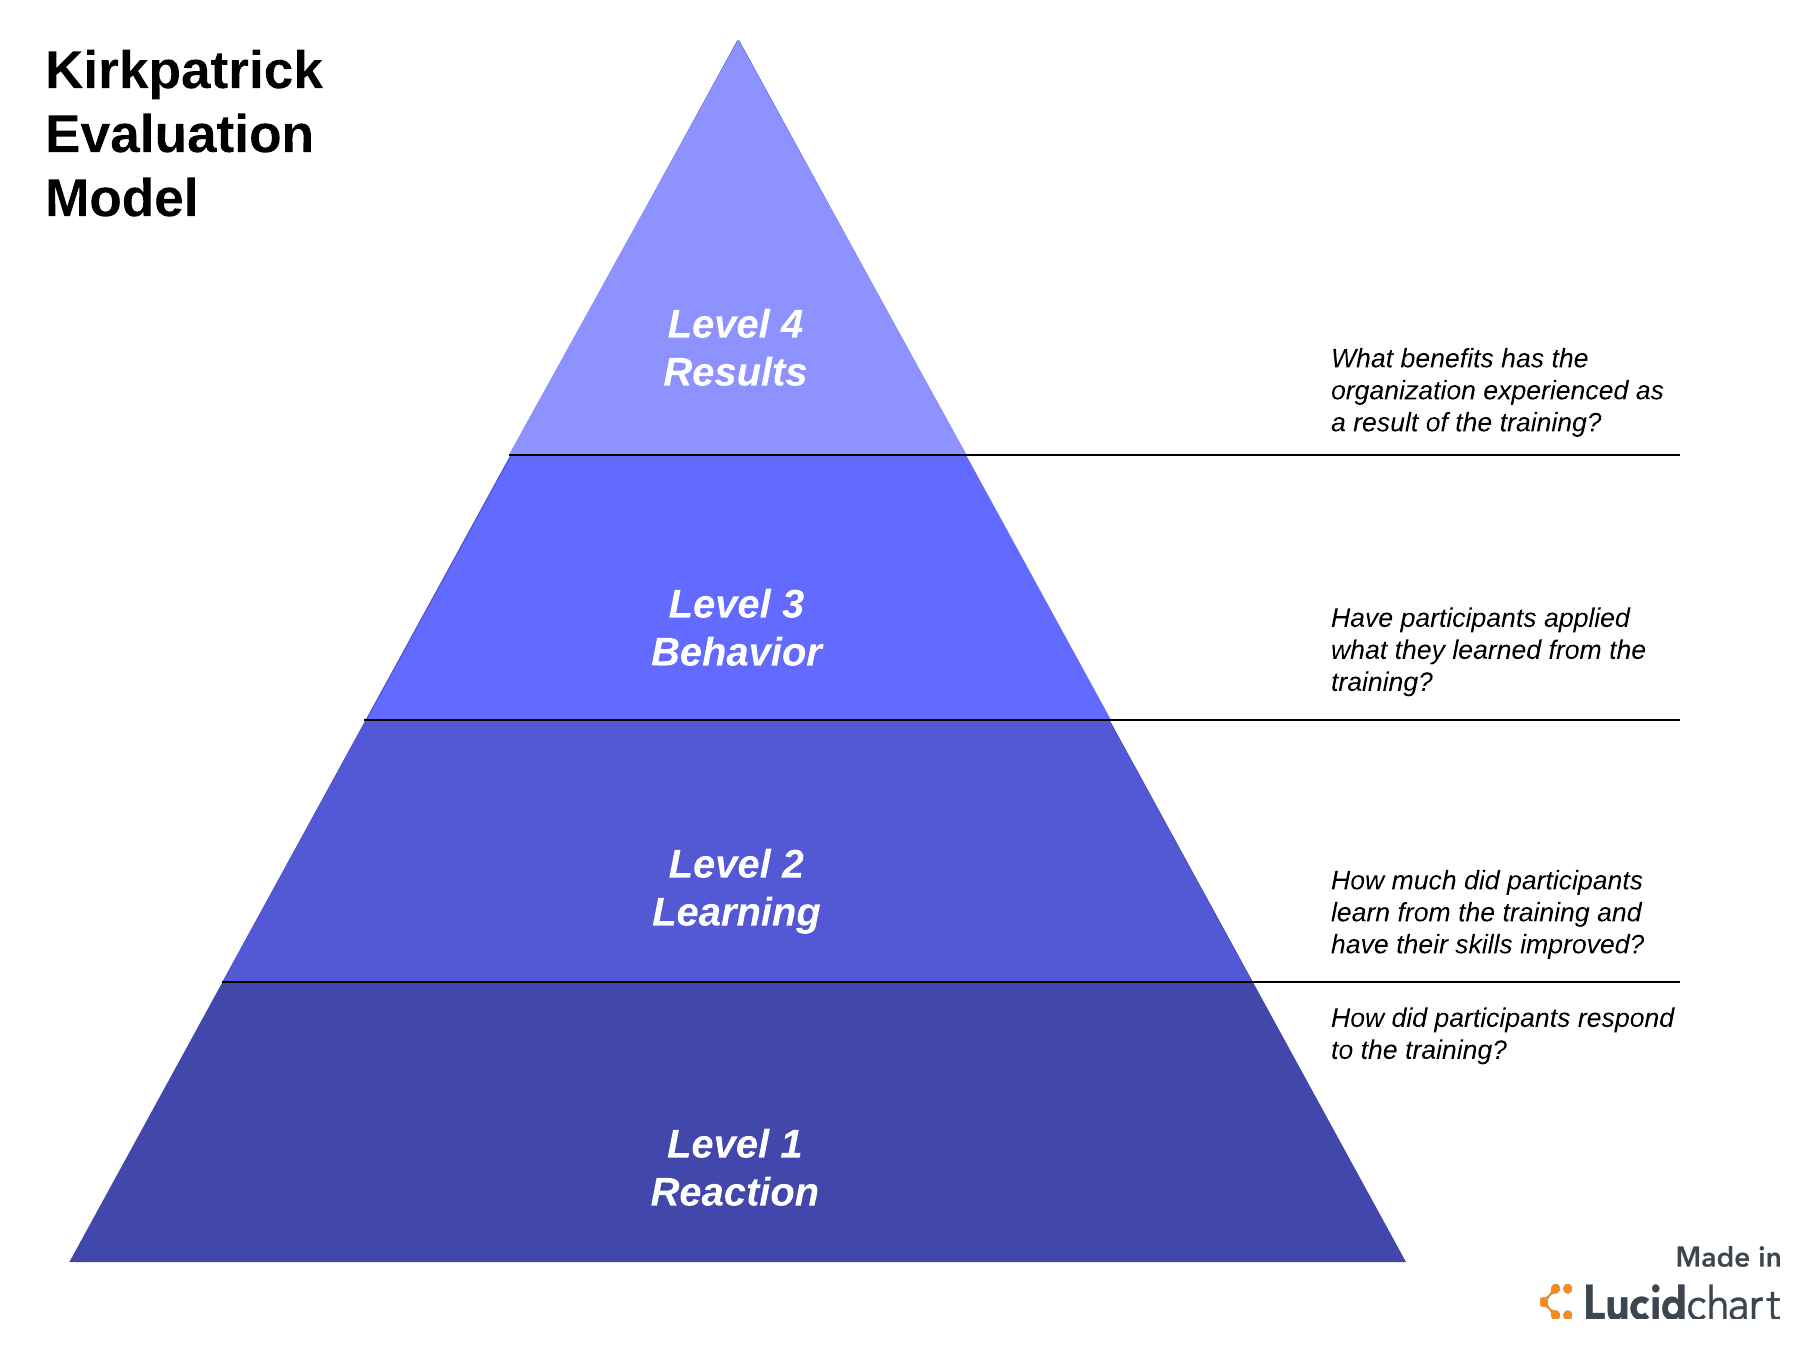 4 levels of Kirkpatrick evaluation model